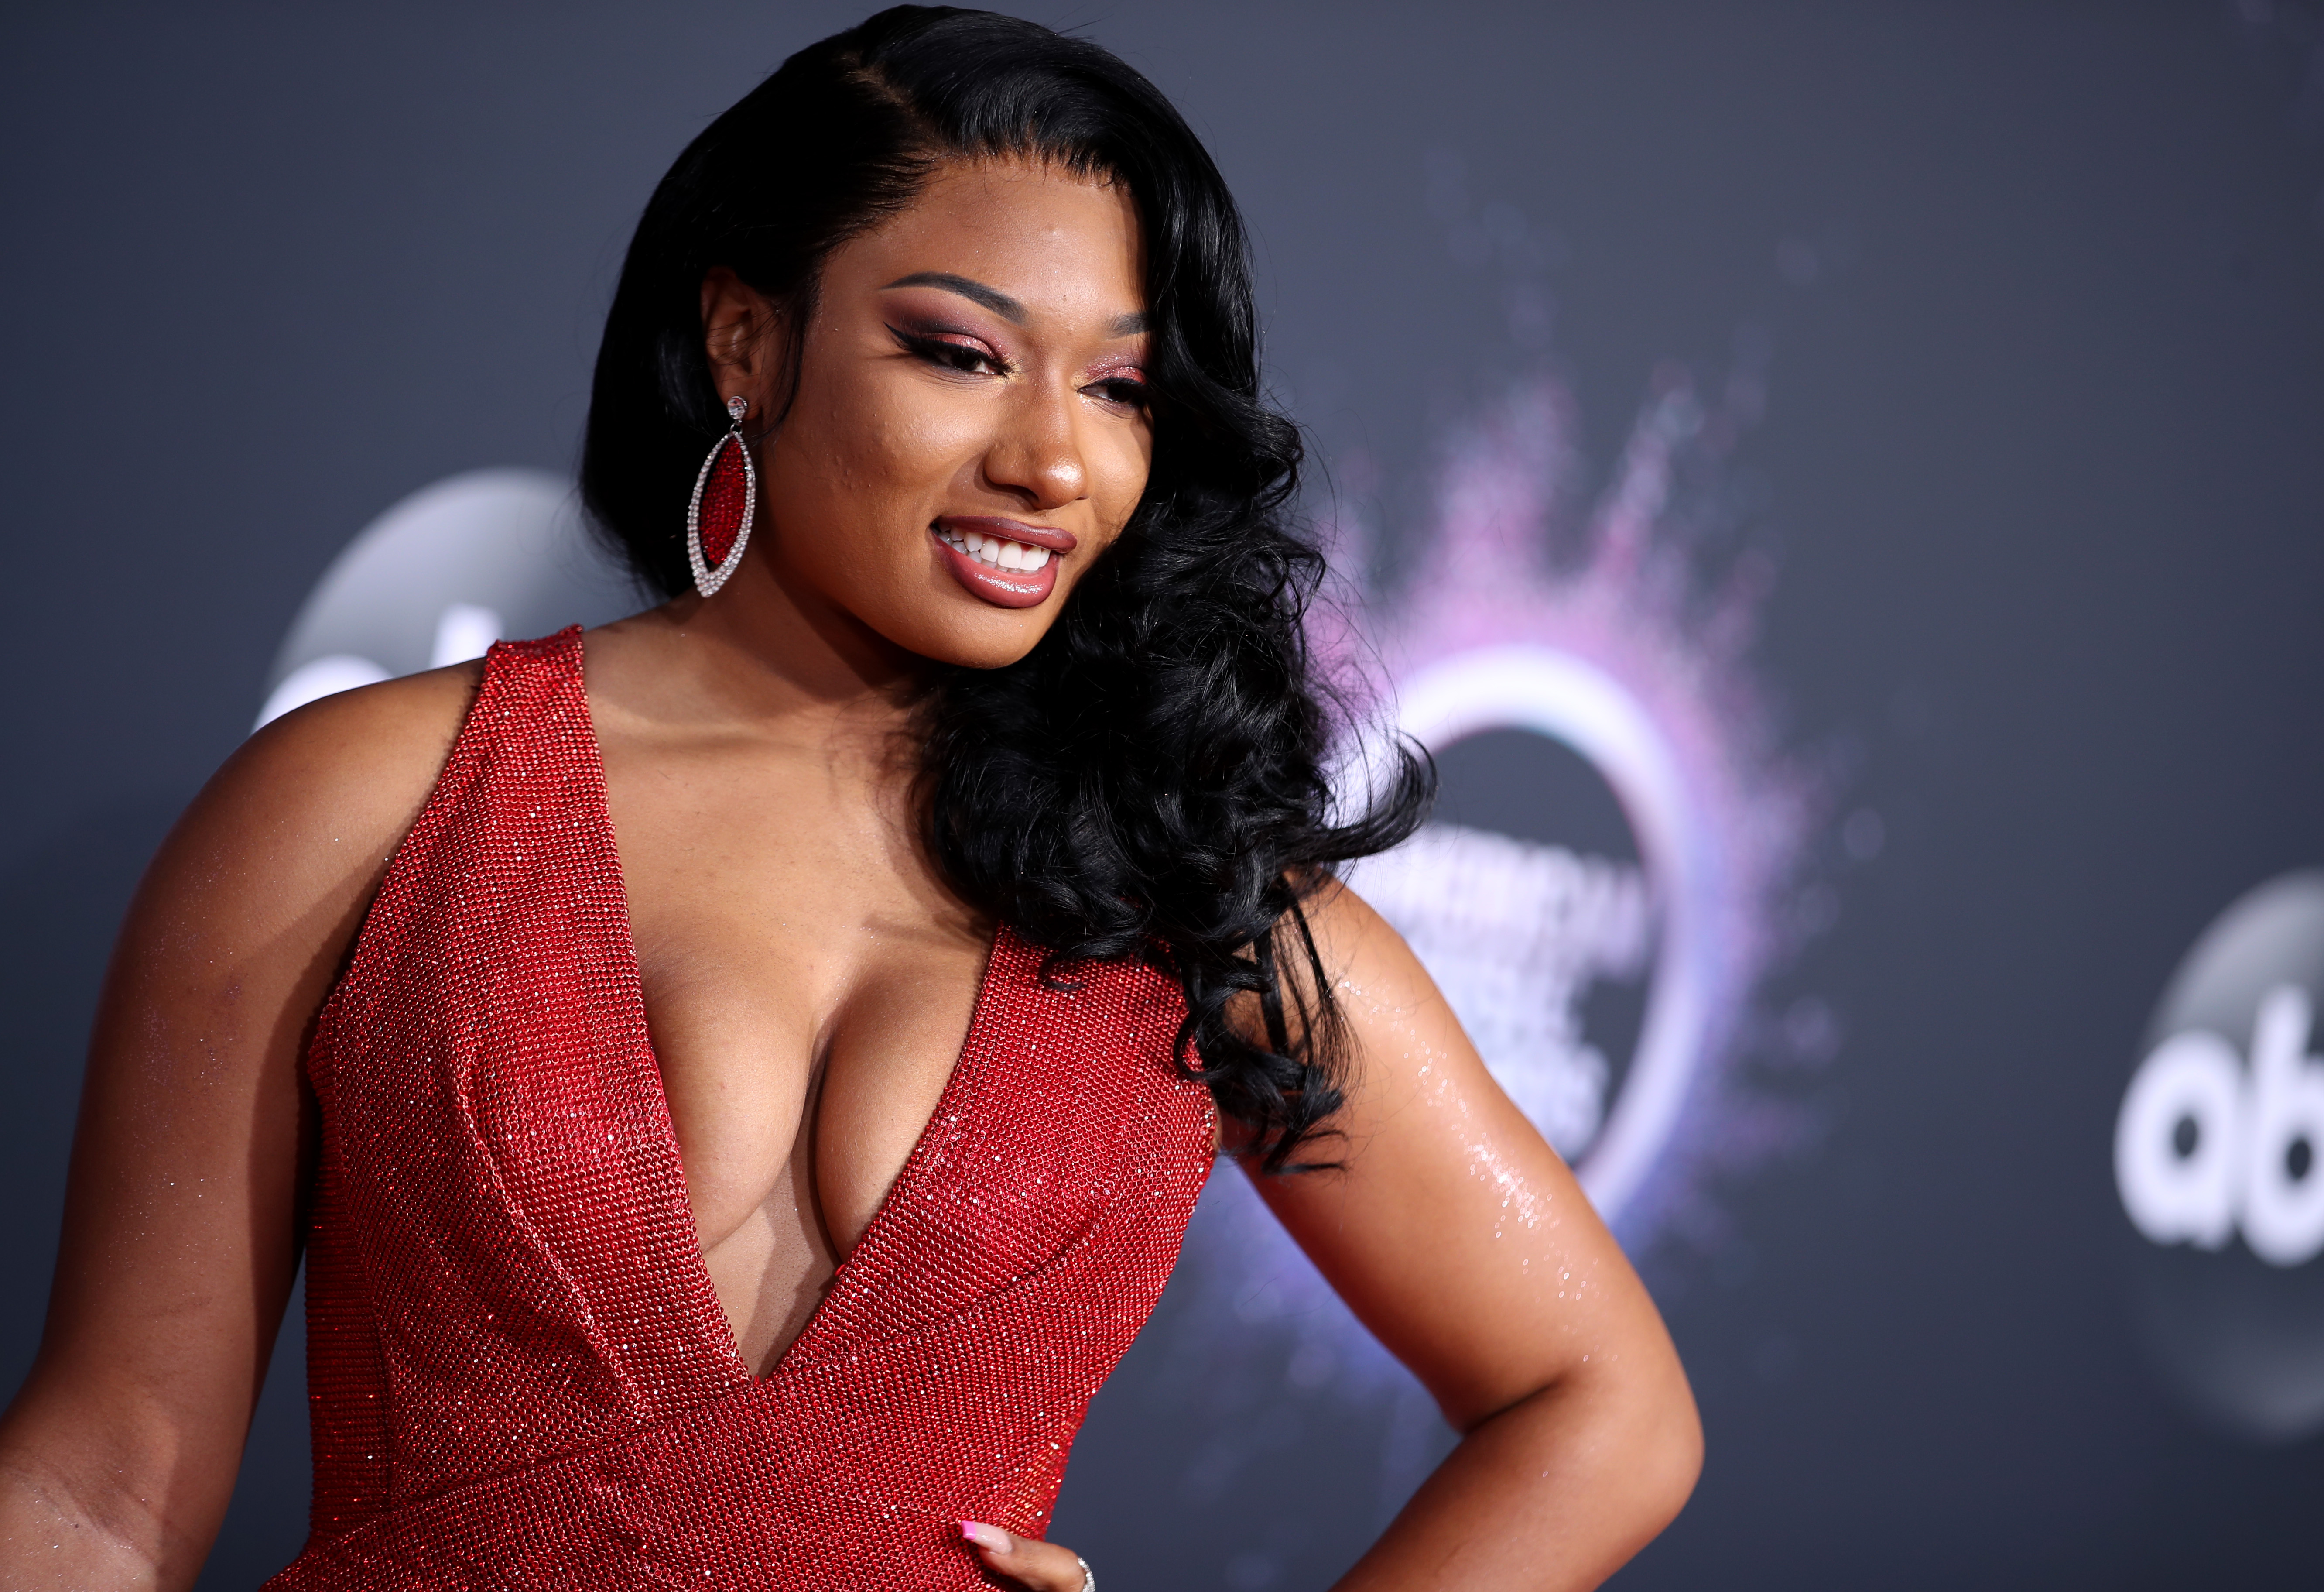 Megan Thee Stallion attends the 2019 American Music Awards on Nov. 24, 2019 in Los Angeles, California.